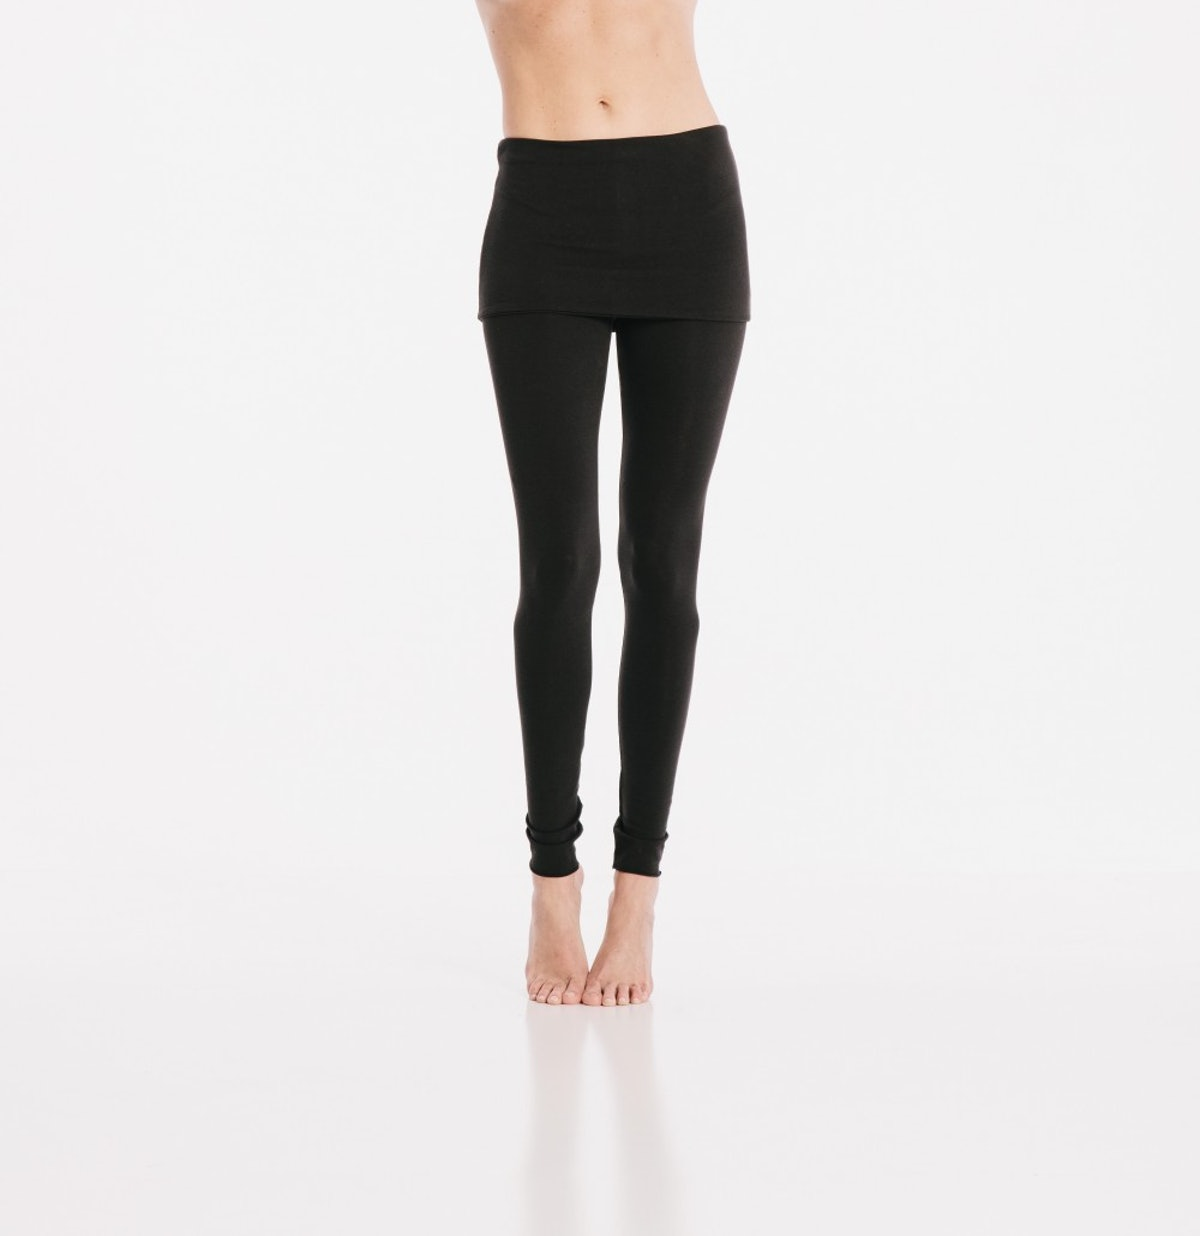 How To Clean Your Leggings Properly So They Last Forever ...